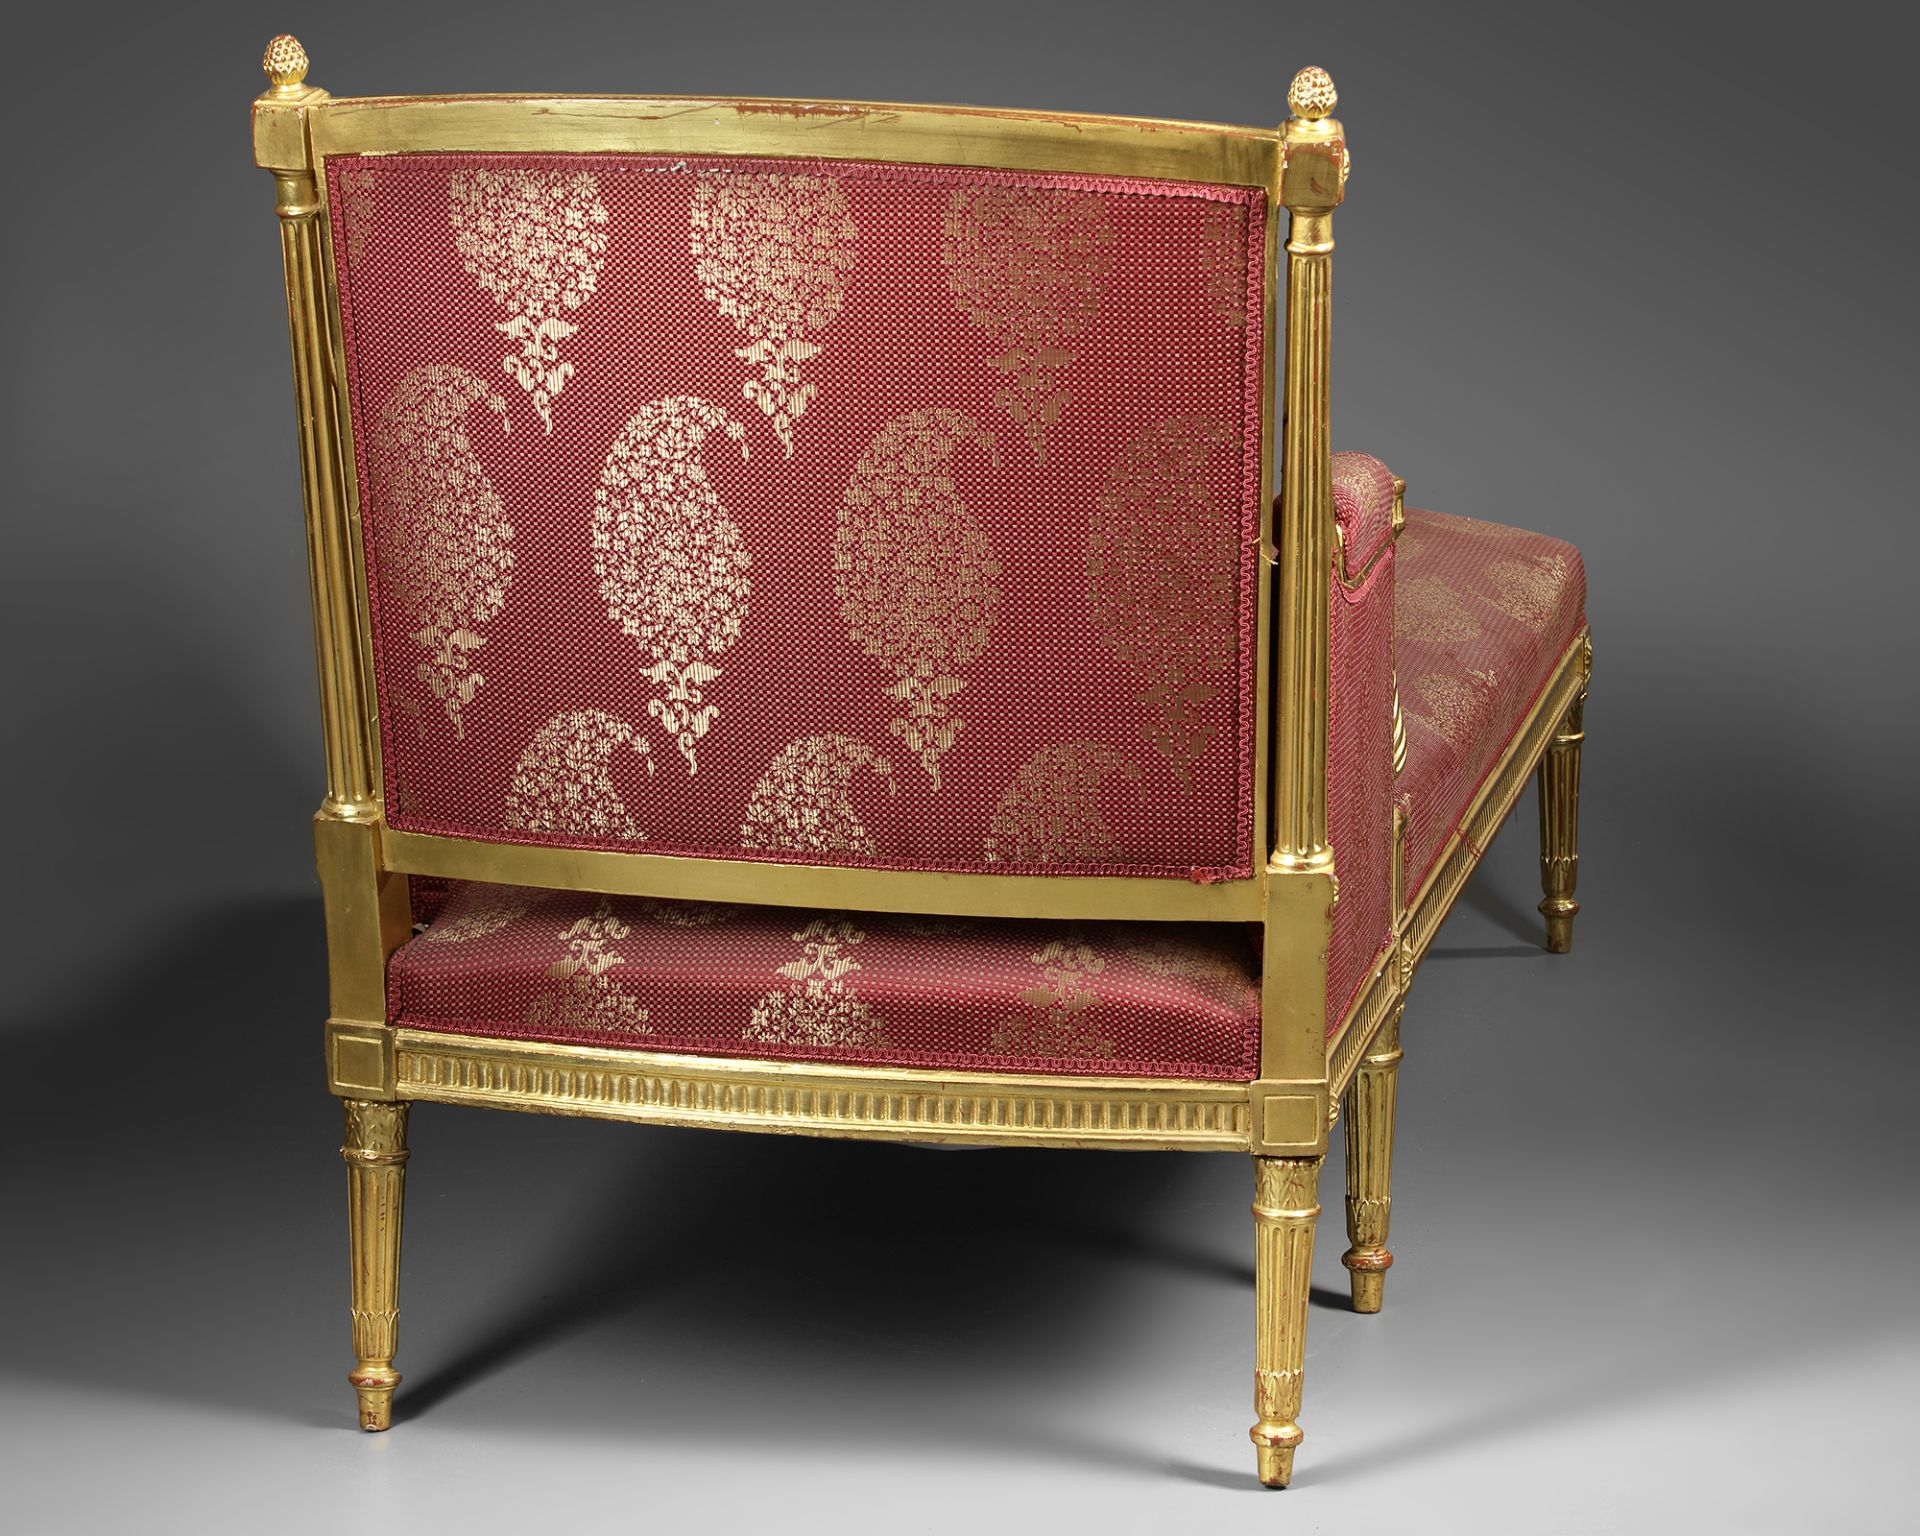 A FRENCH LOUNGE CHAIR, LOUIS XVI STYLE, LATE 19TH CENTURY - Image 3 of 4